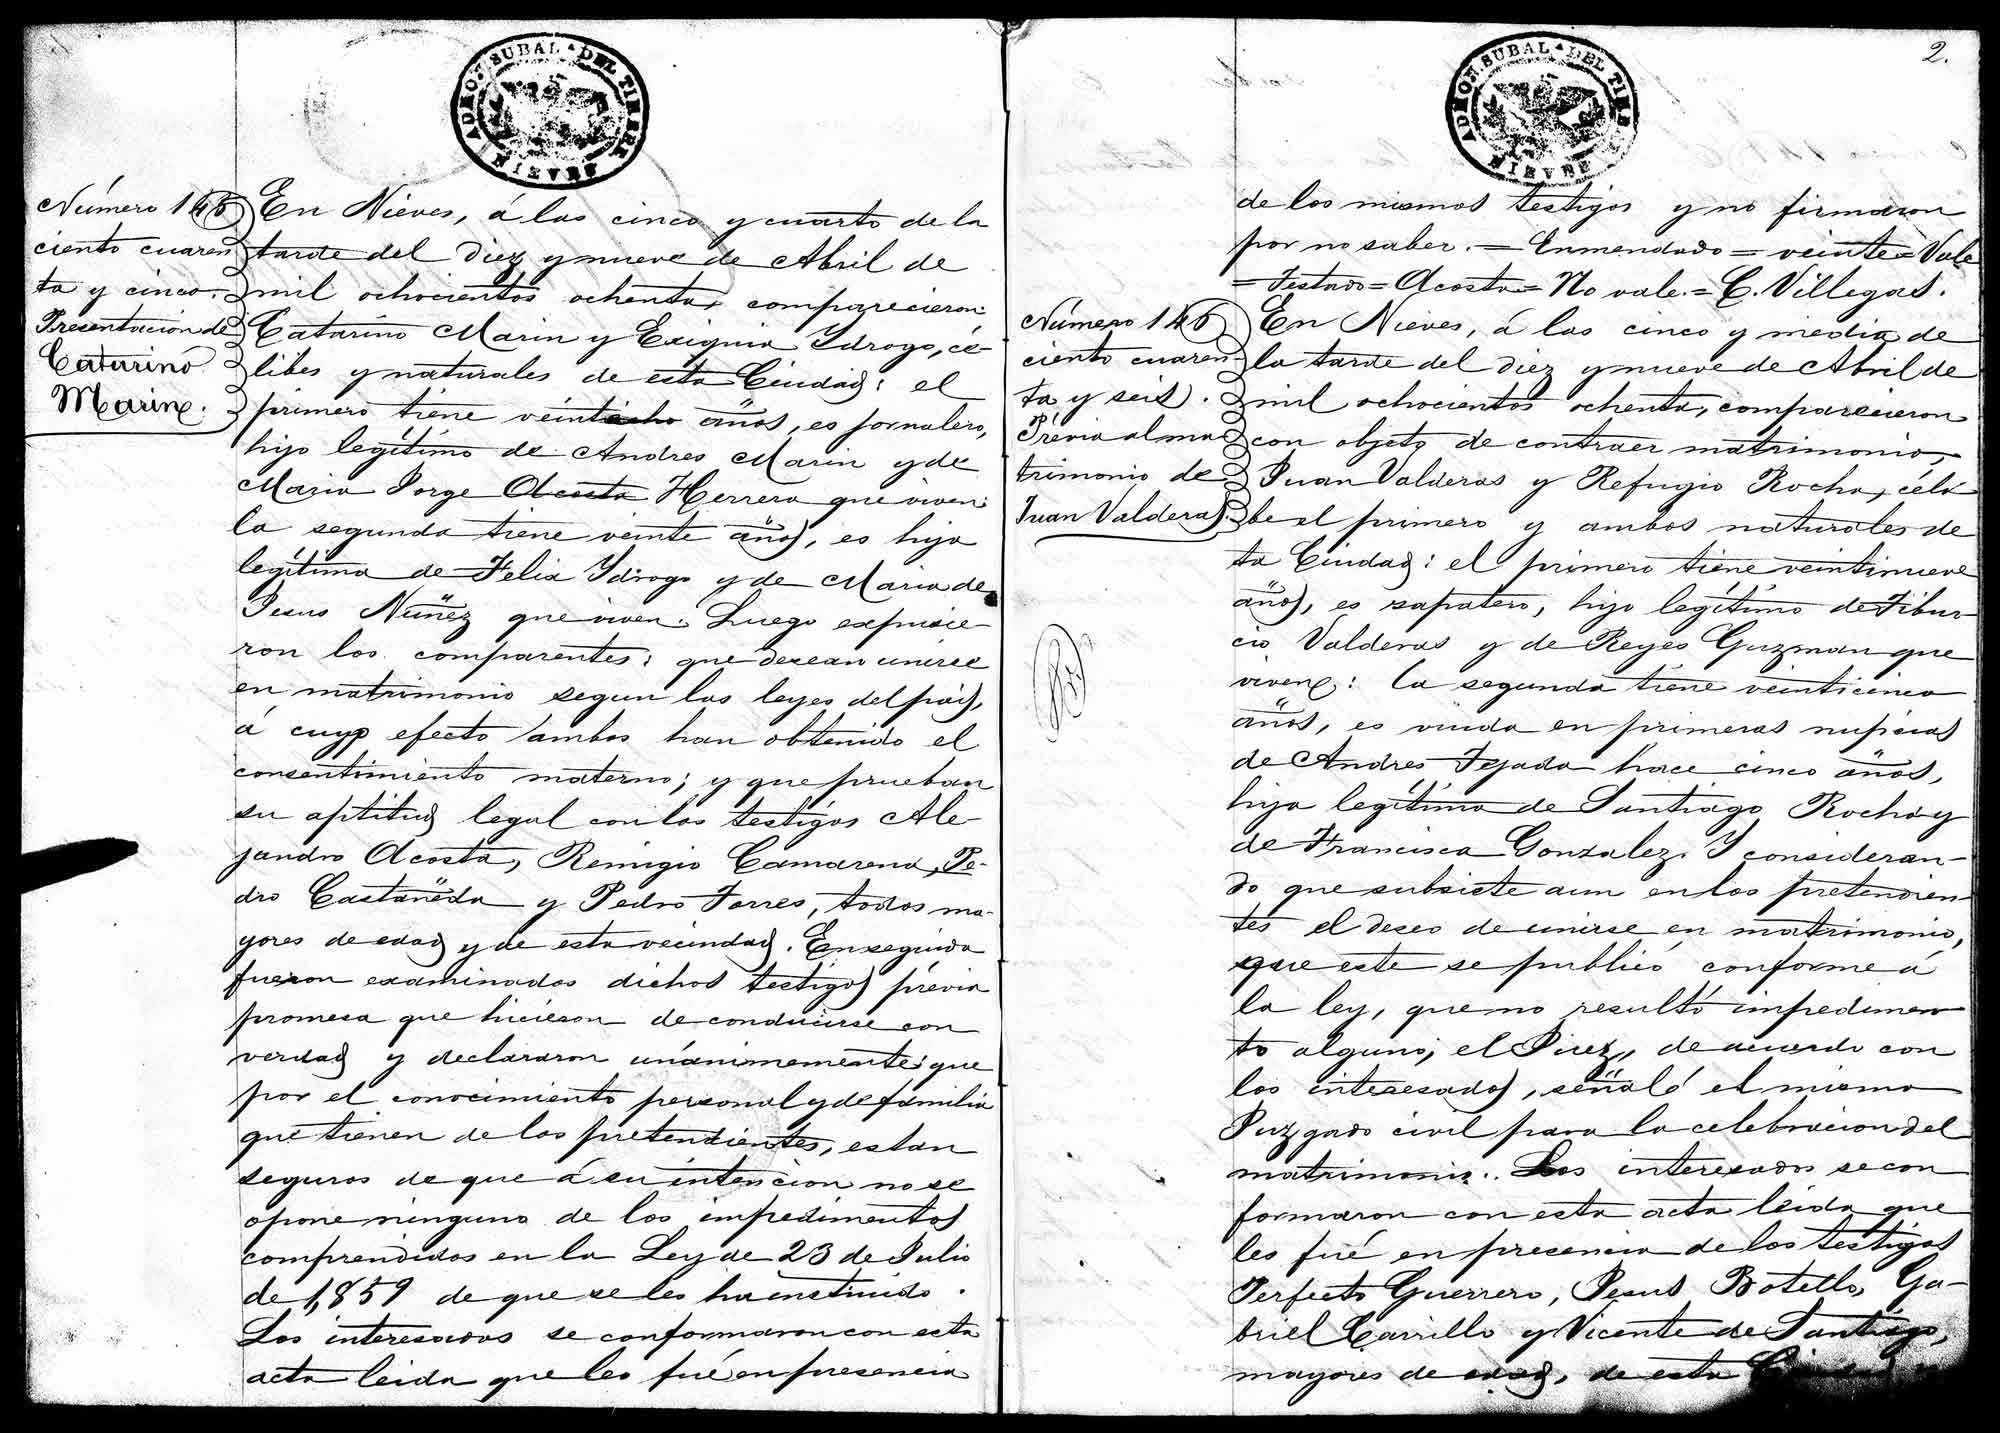 Nieves marriage record for Juan Balderas and Refugio Rocha, #146